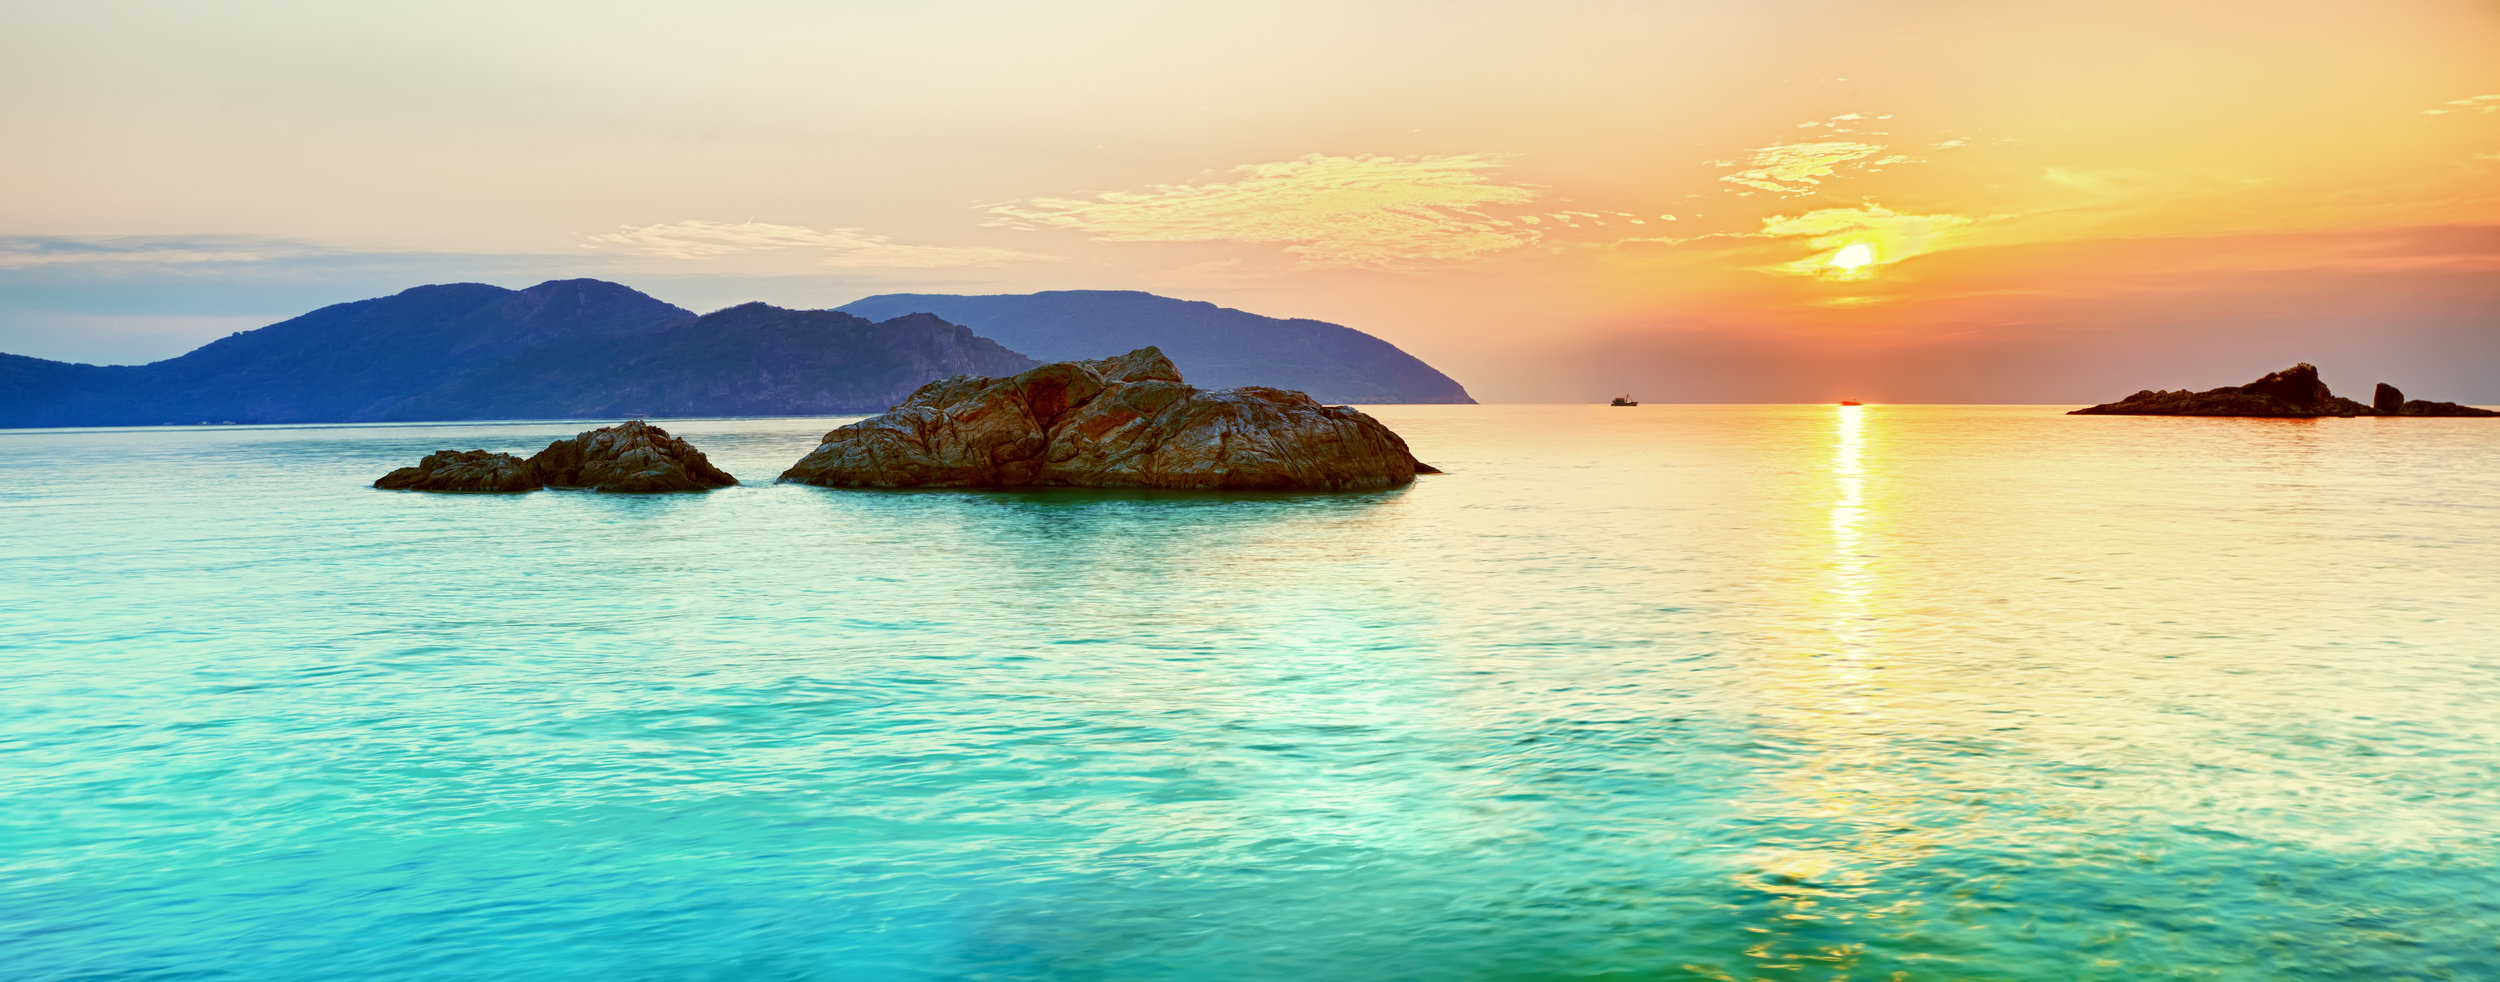 turquoise ocean sunset and mountains.jpg